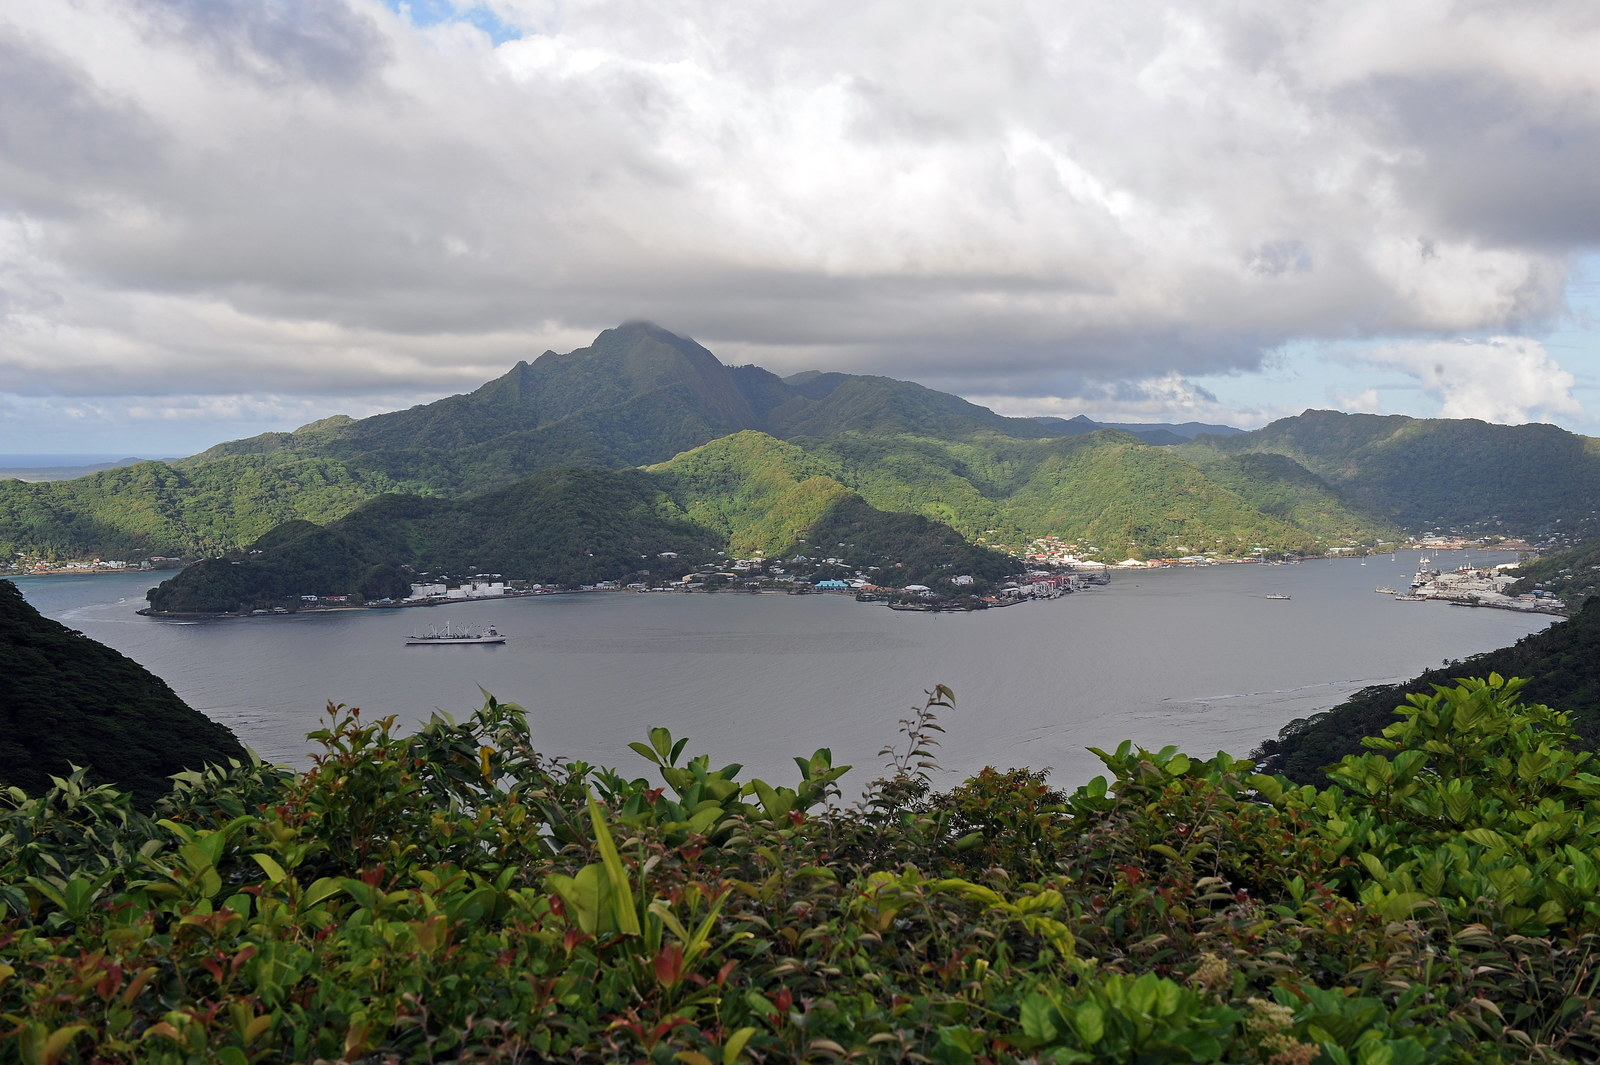 Matafao Peak above Pago Pago Harbor on Tutuila in American Samoa.